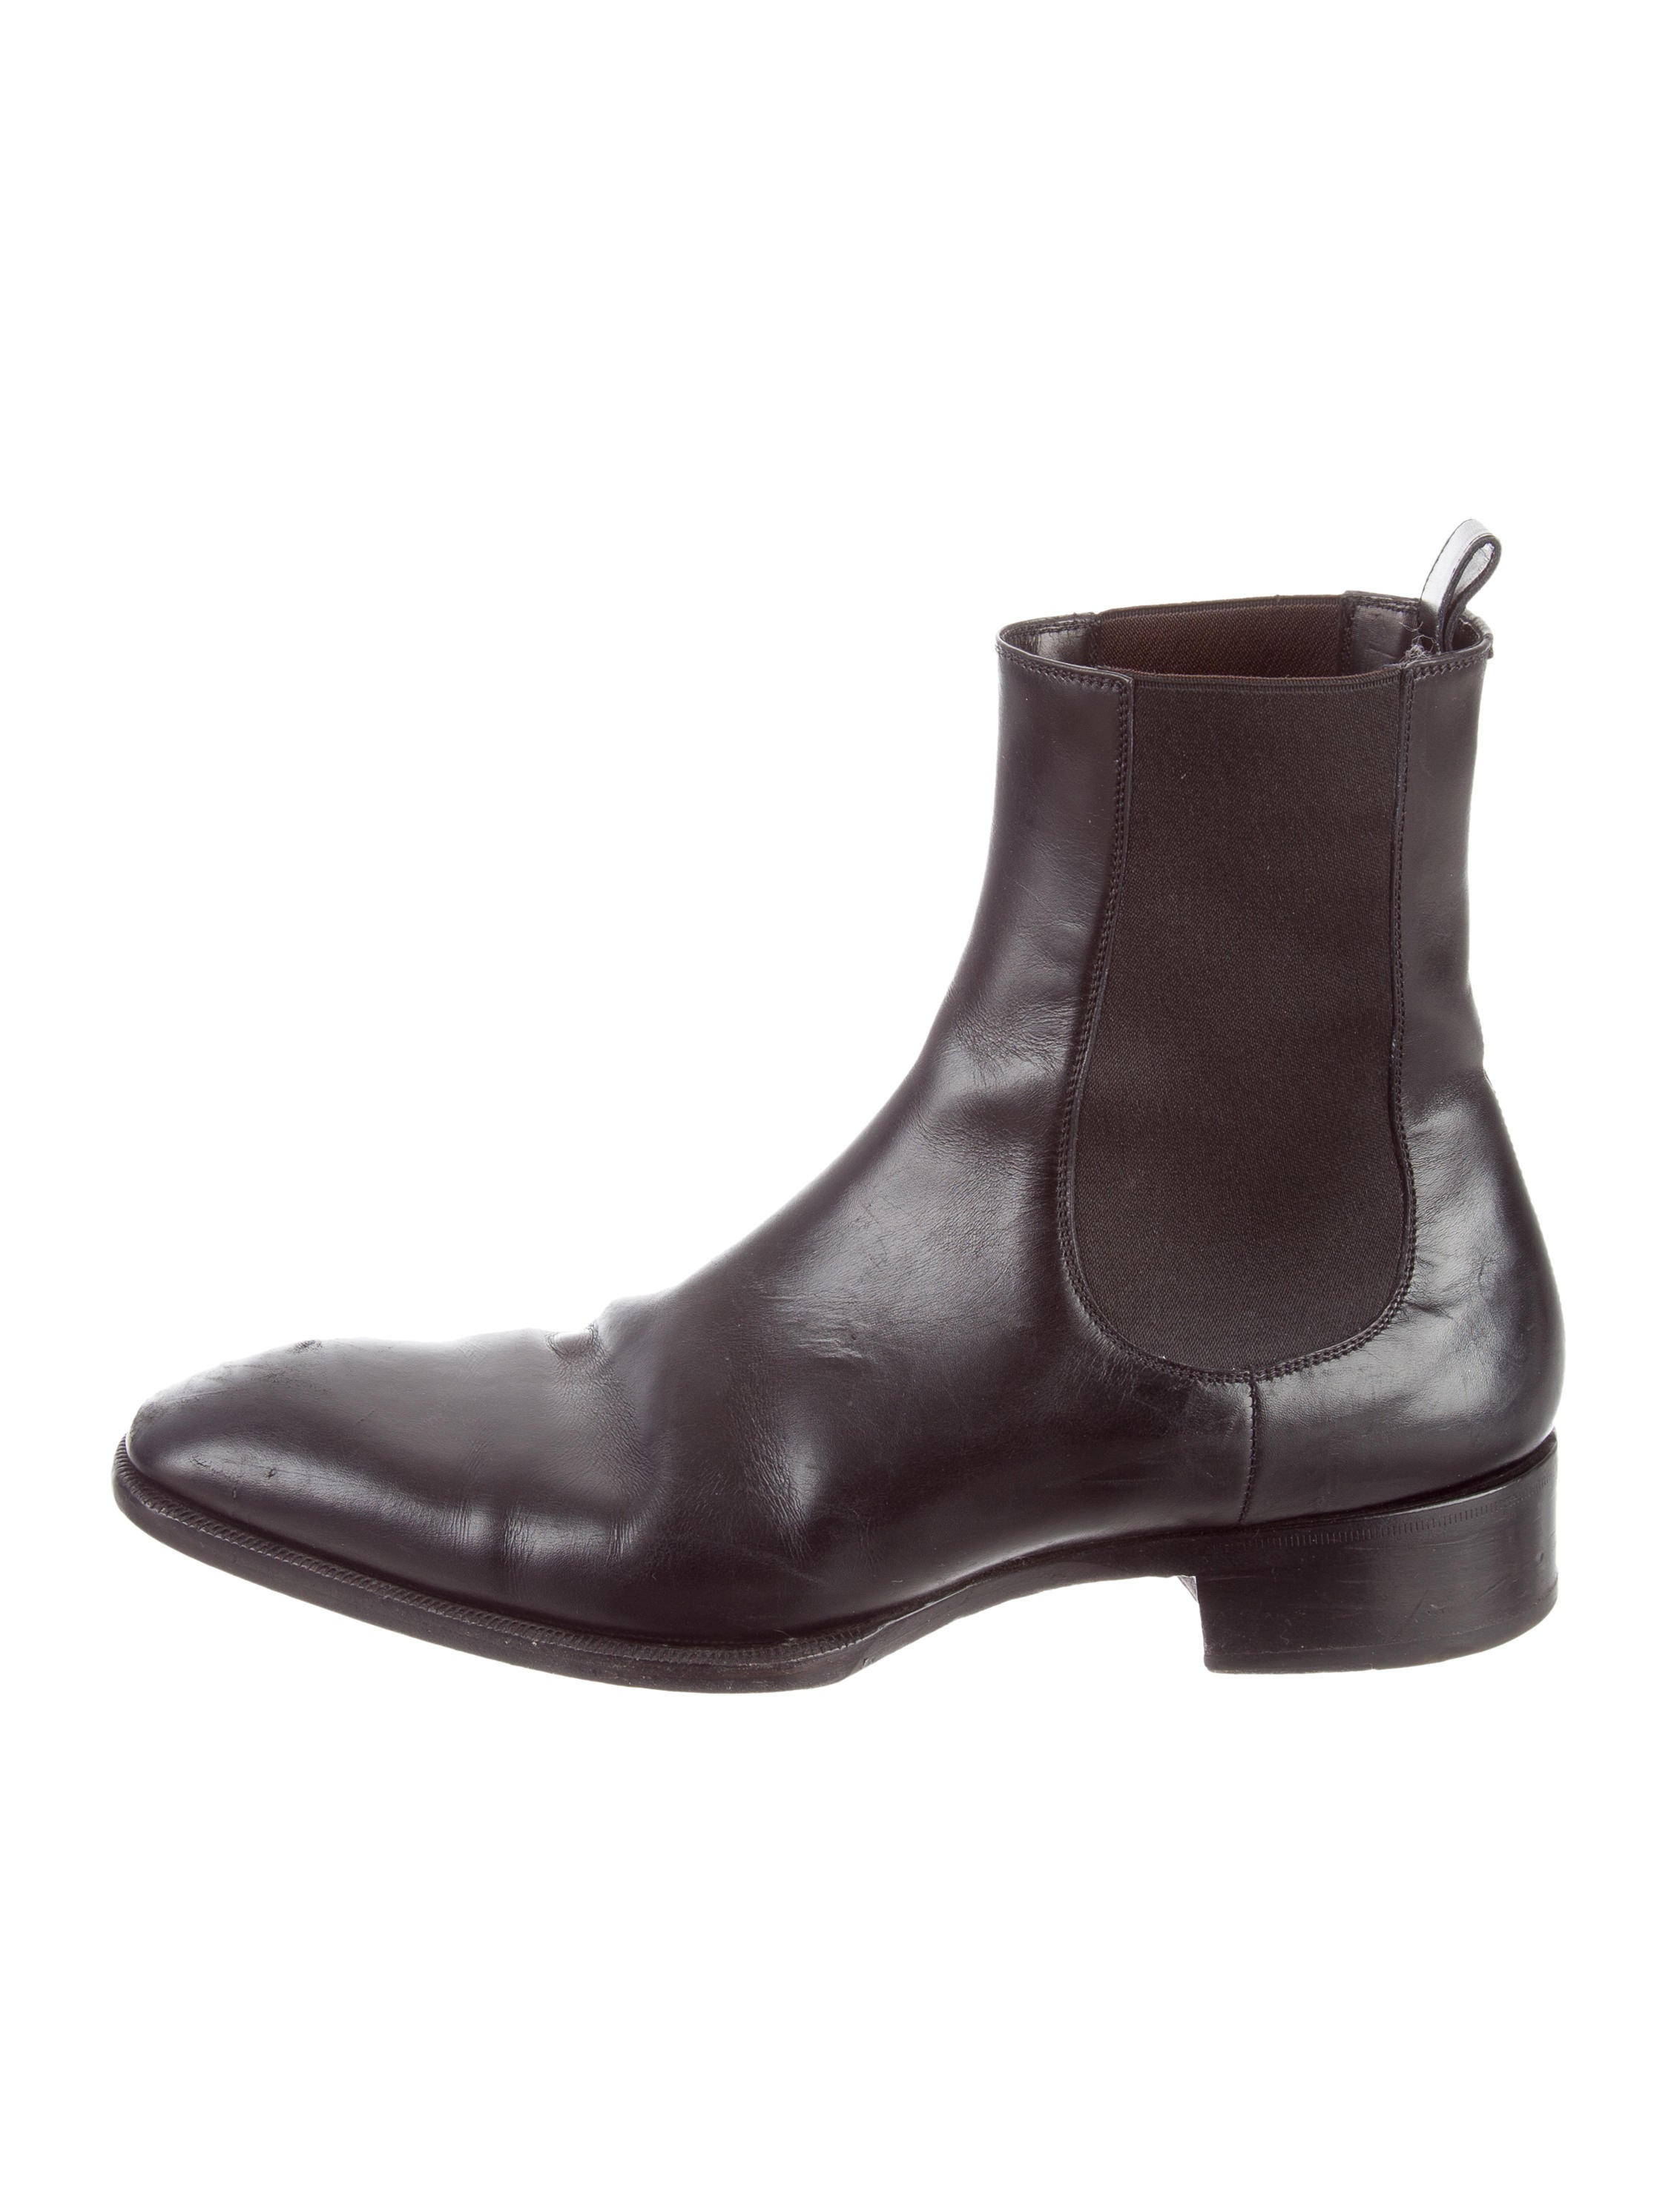 tom ford leather chelsea boots shoes tom34192 the